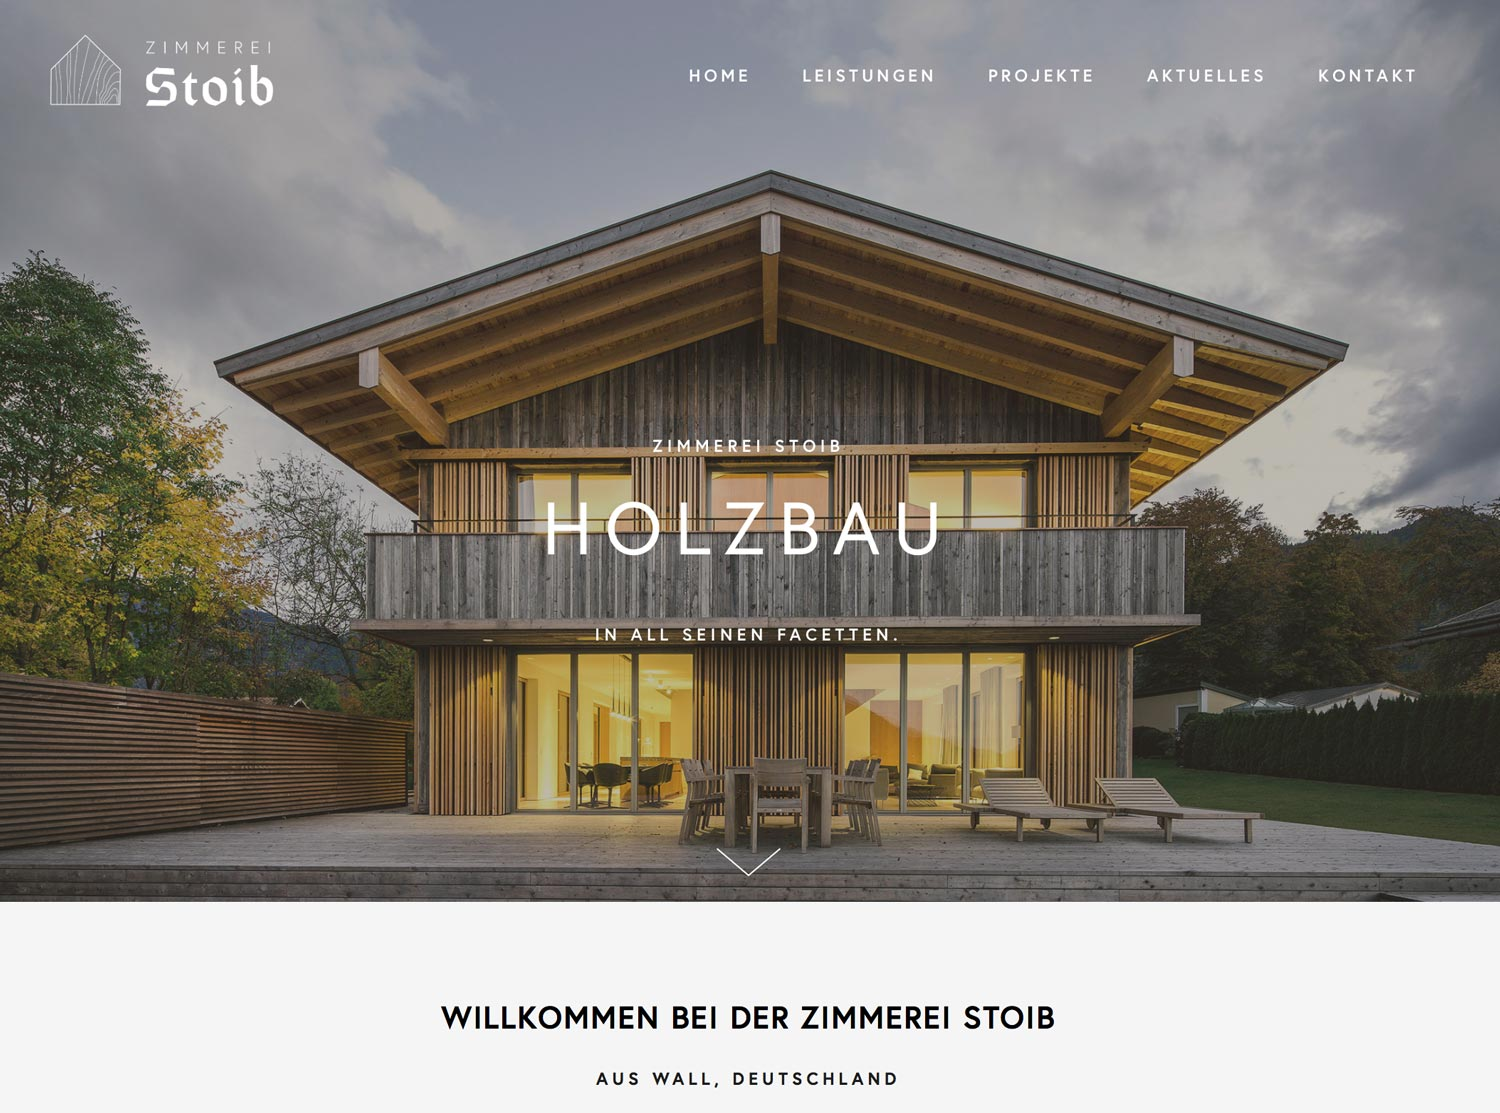 zimmerei-stoib-website-launch.jpg